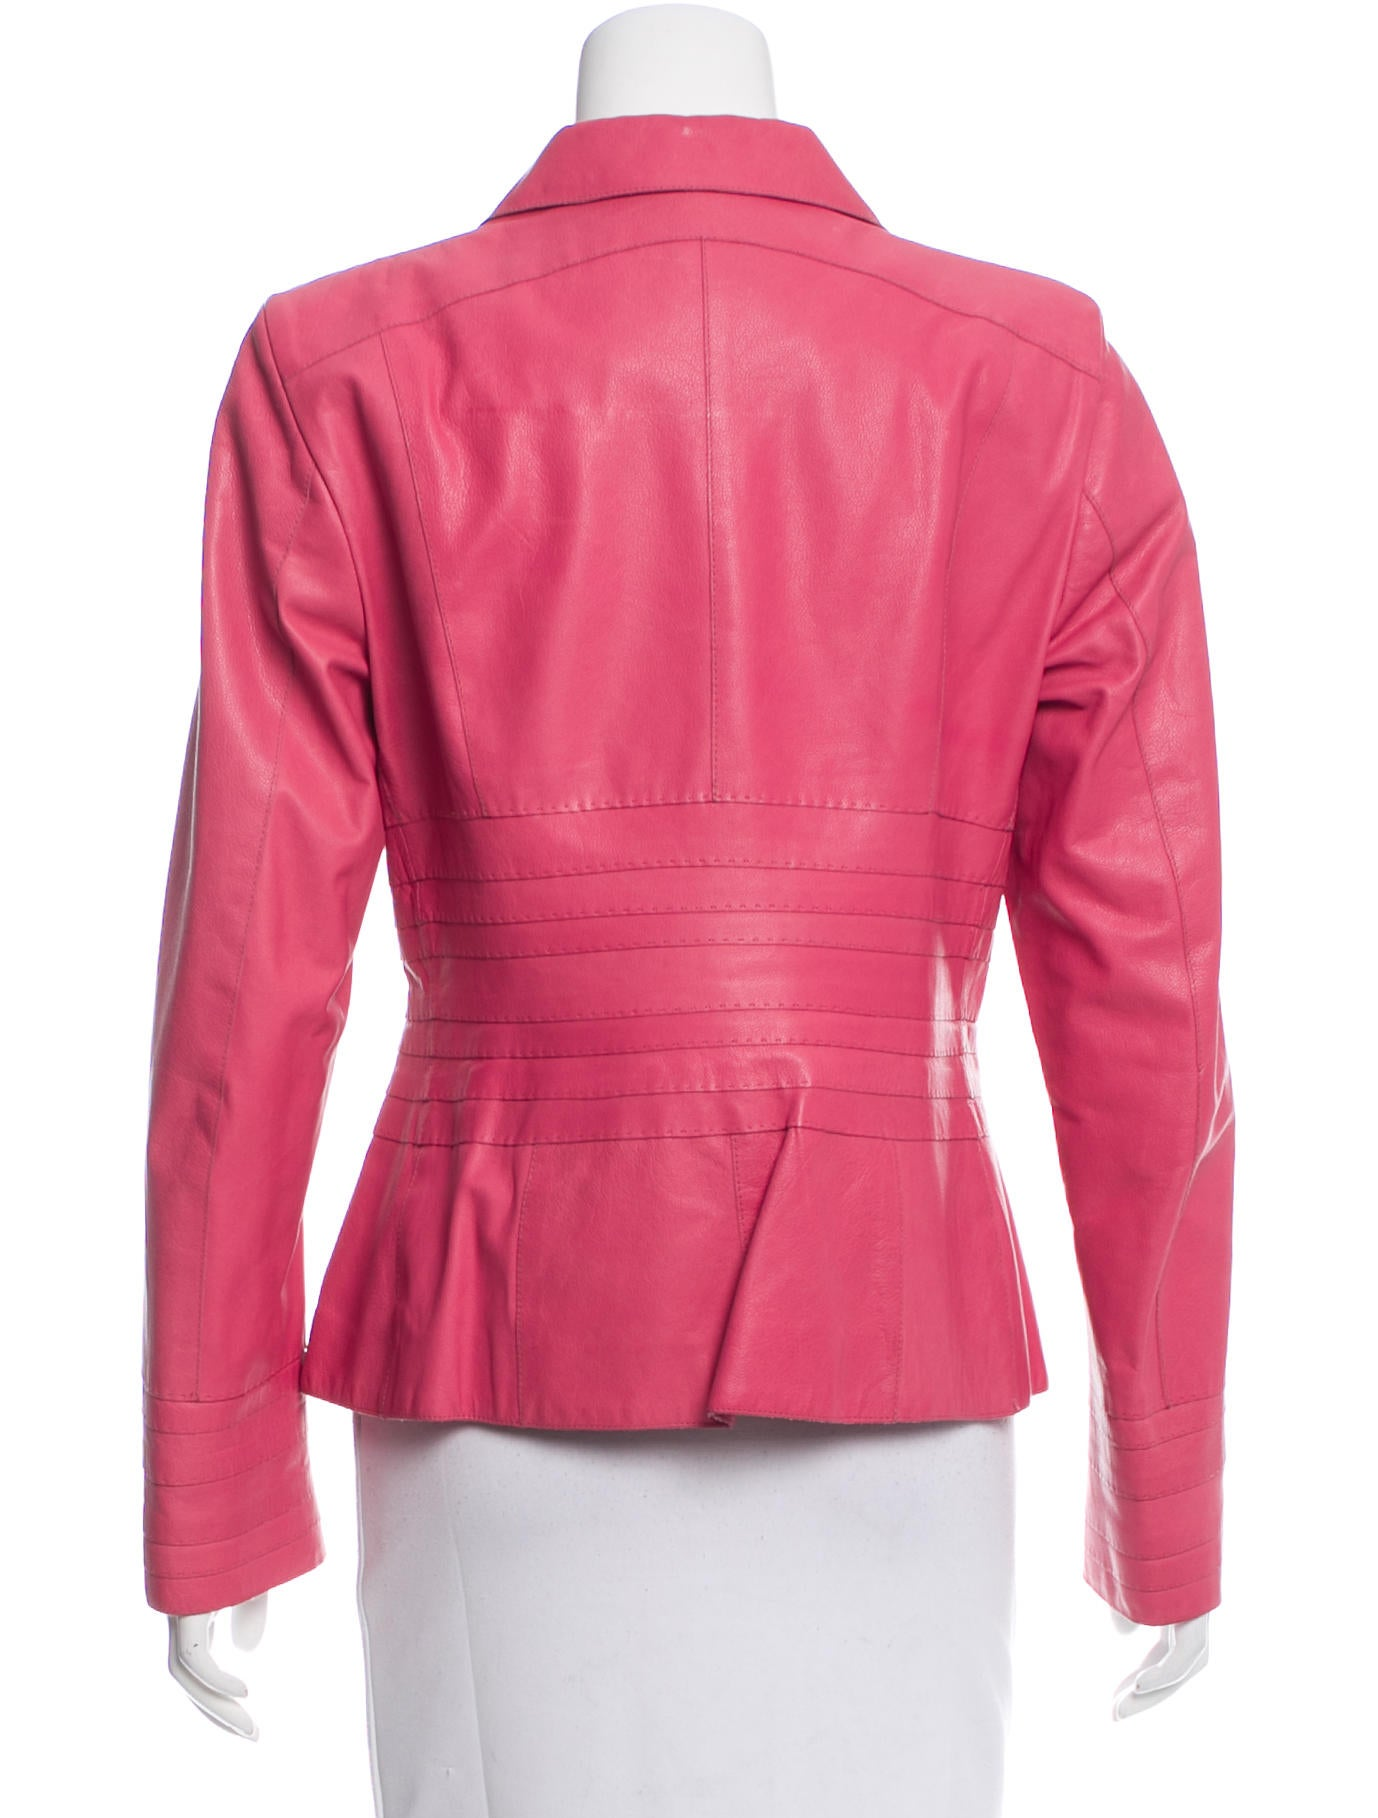 Salvatore Ferragamo Leather Fitted Jacket - Clothing ...